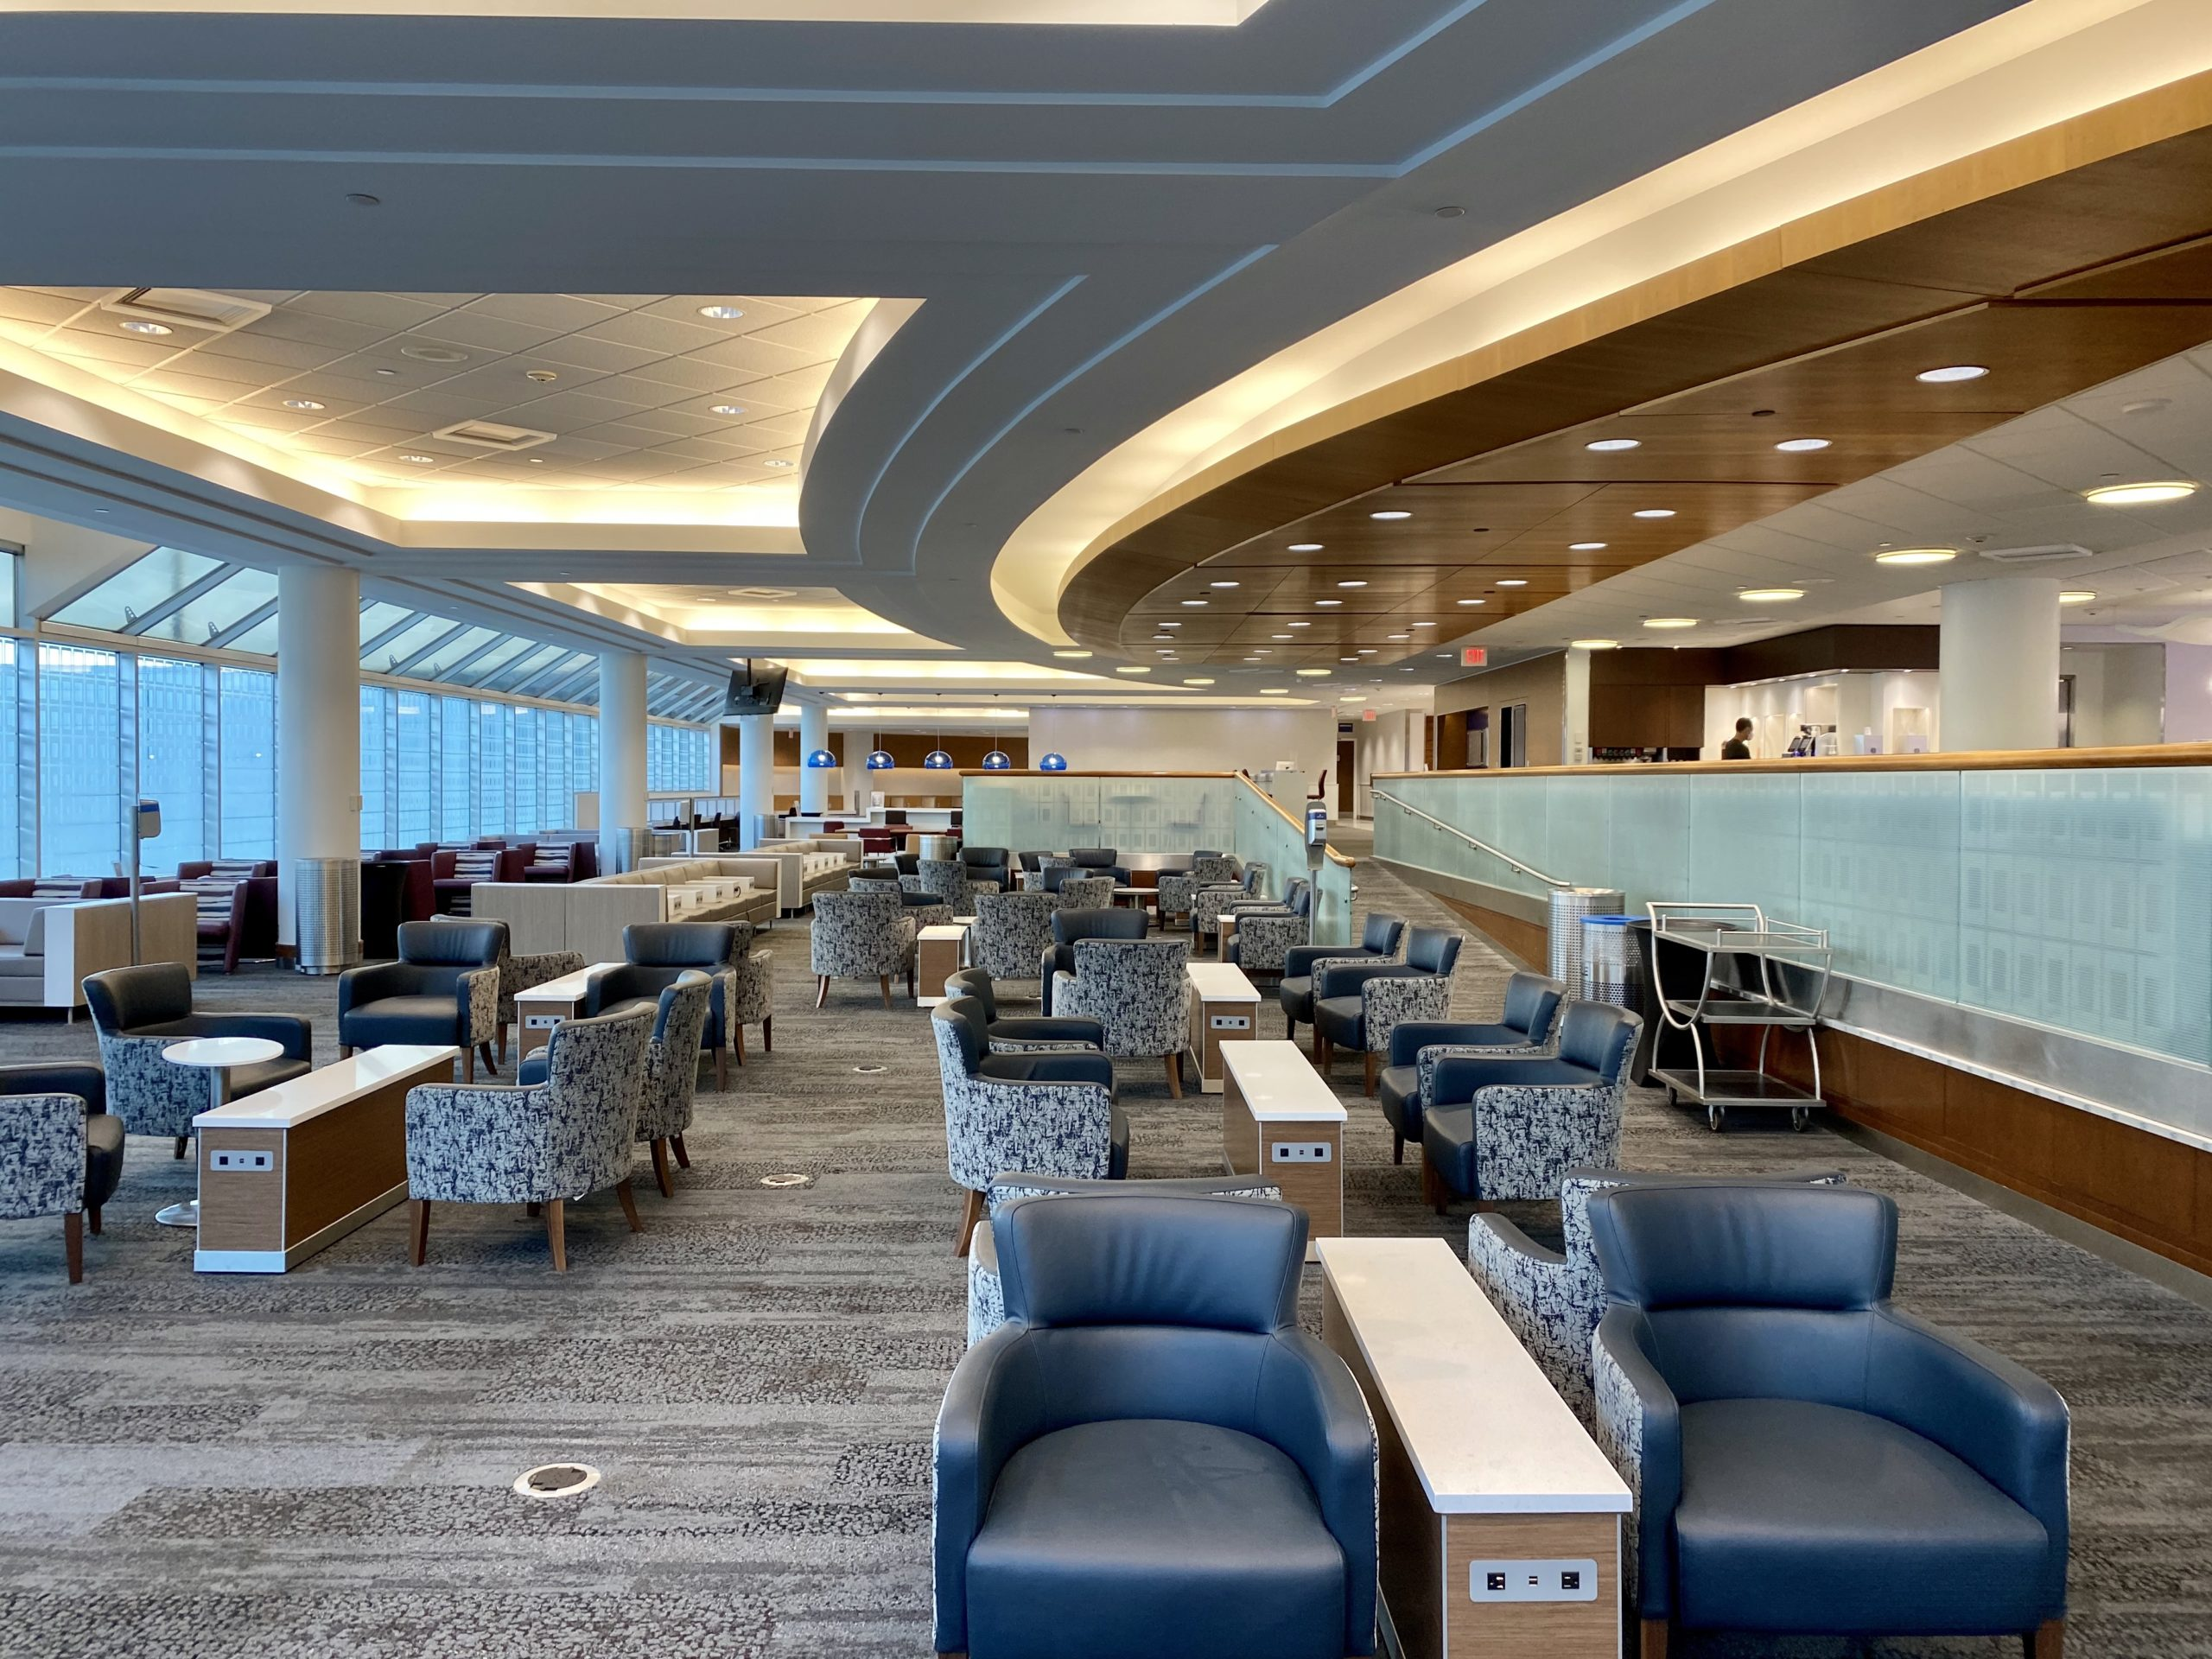 airport lounges covid-19